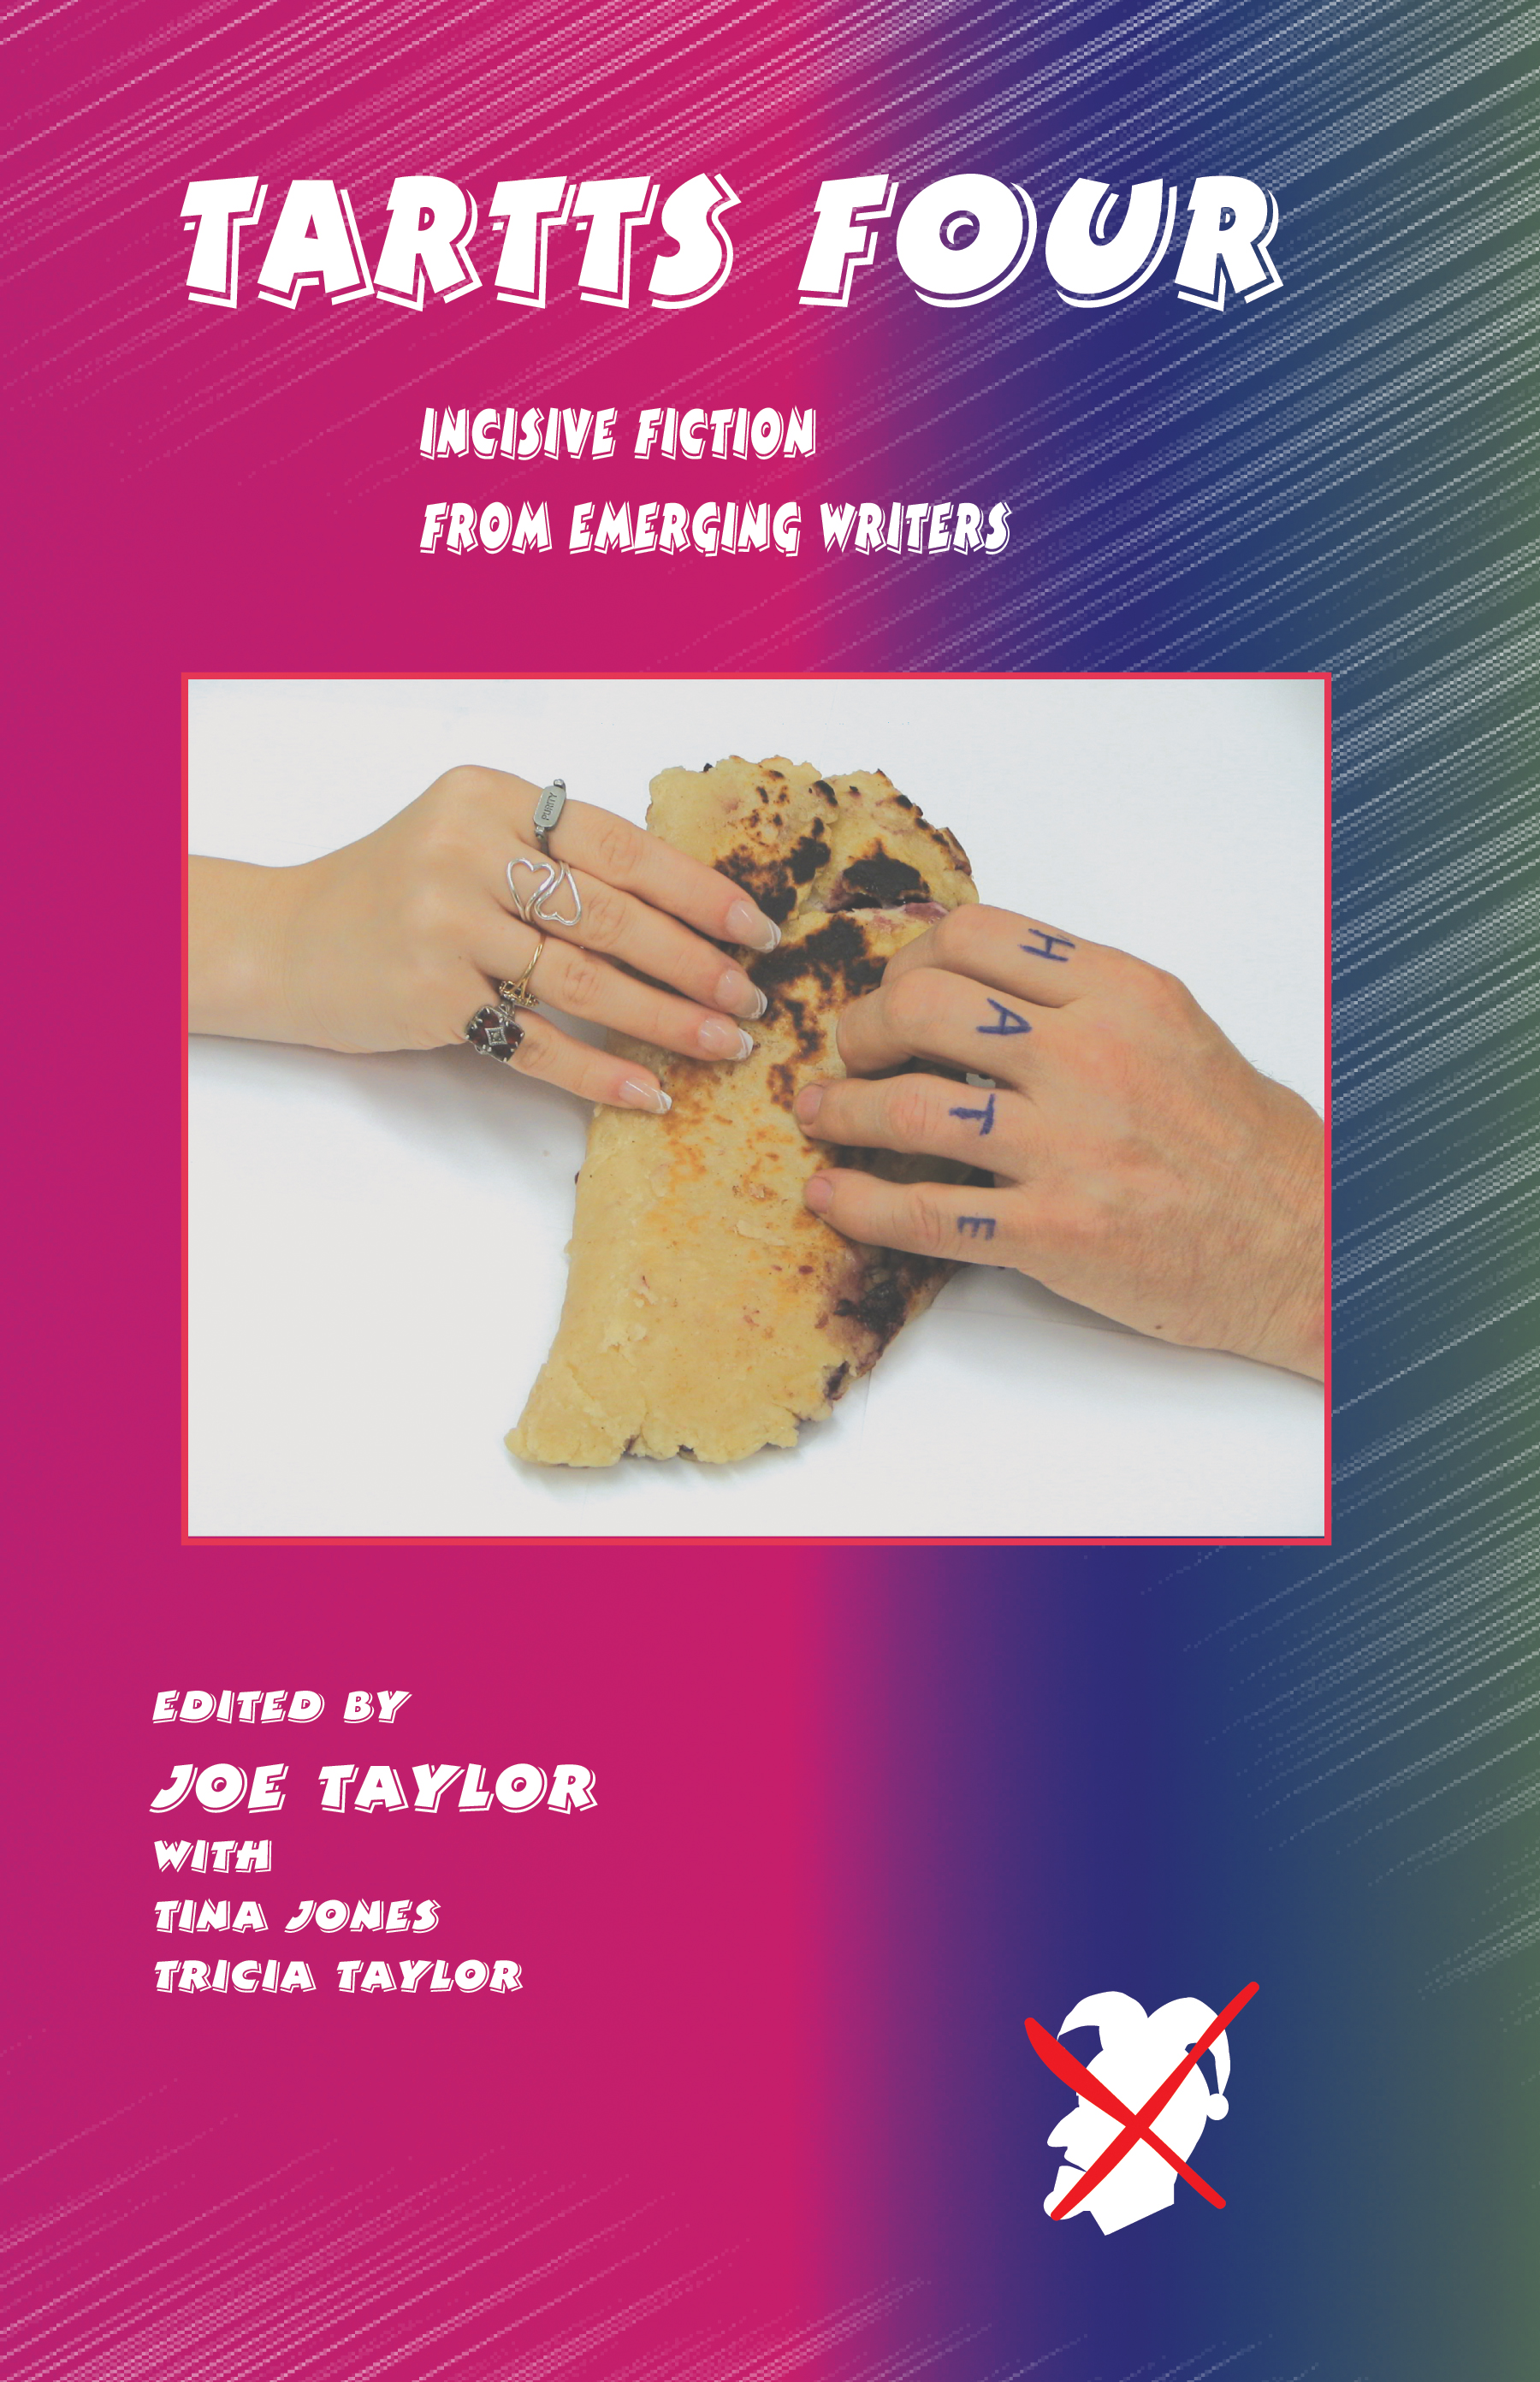 Tartts: Incisive Fiction from Emerging Writers